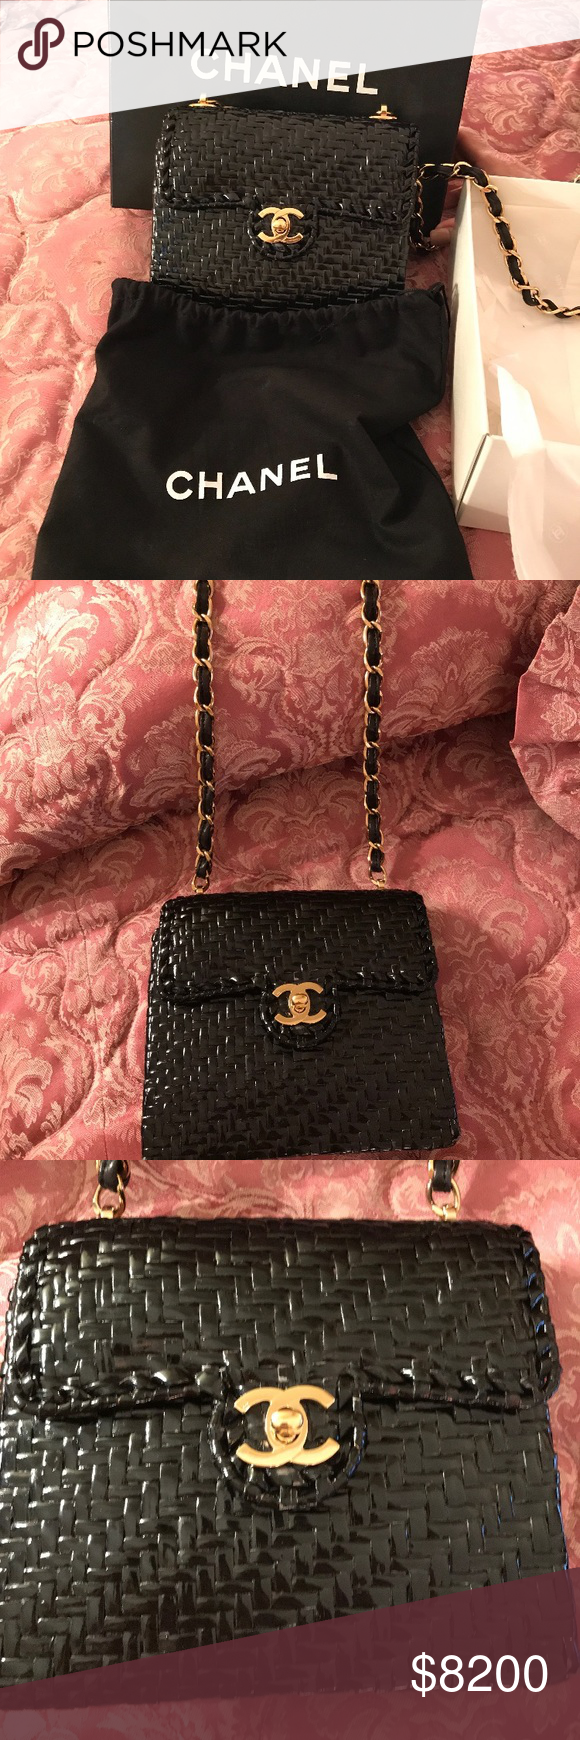 24bc28d4230b Chanel Classic Flap Rare 1980 s Wicker Rattan Bag  HOT ITEM  Authentic  Vintage Chanel Wicker